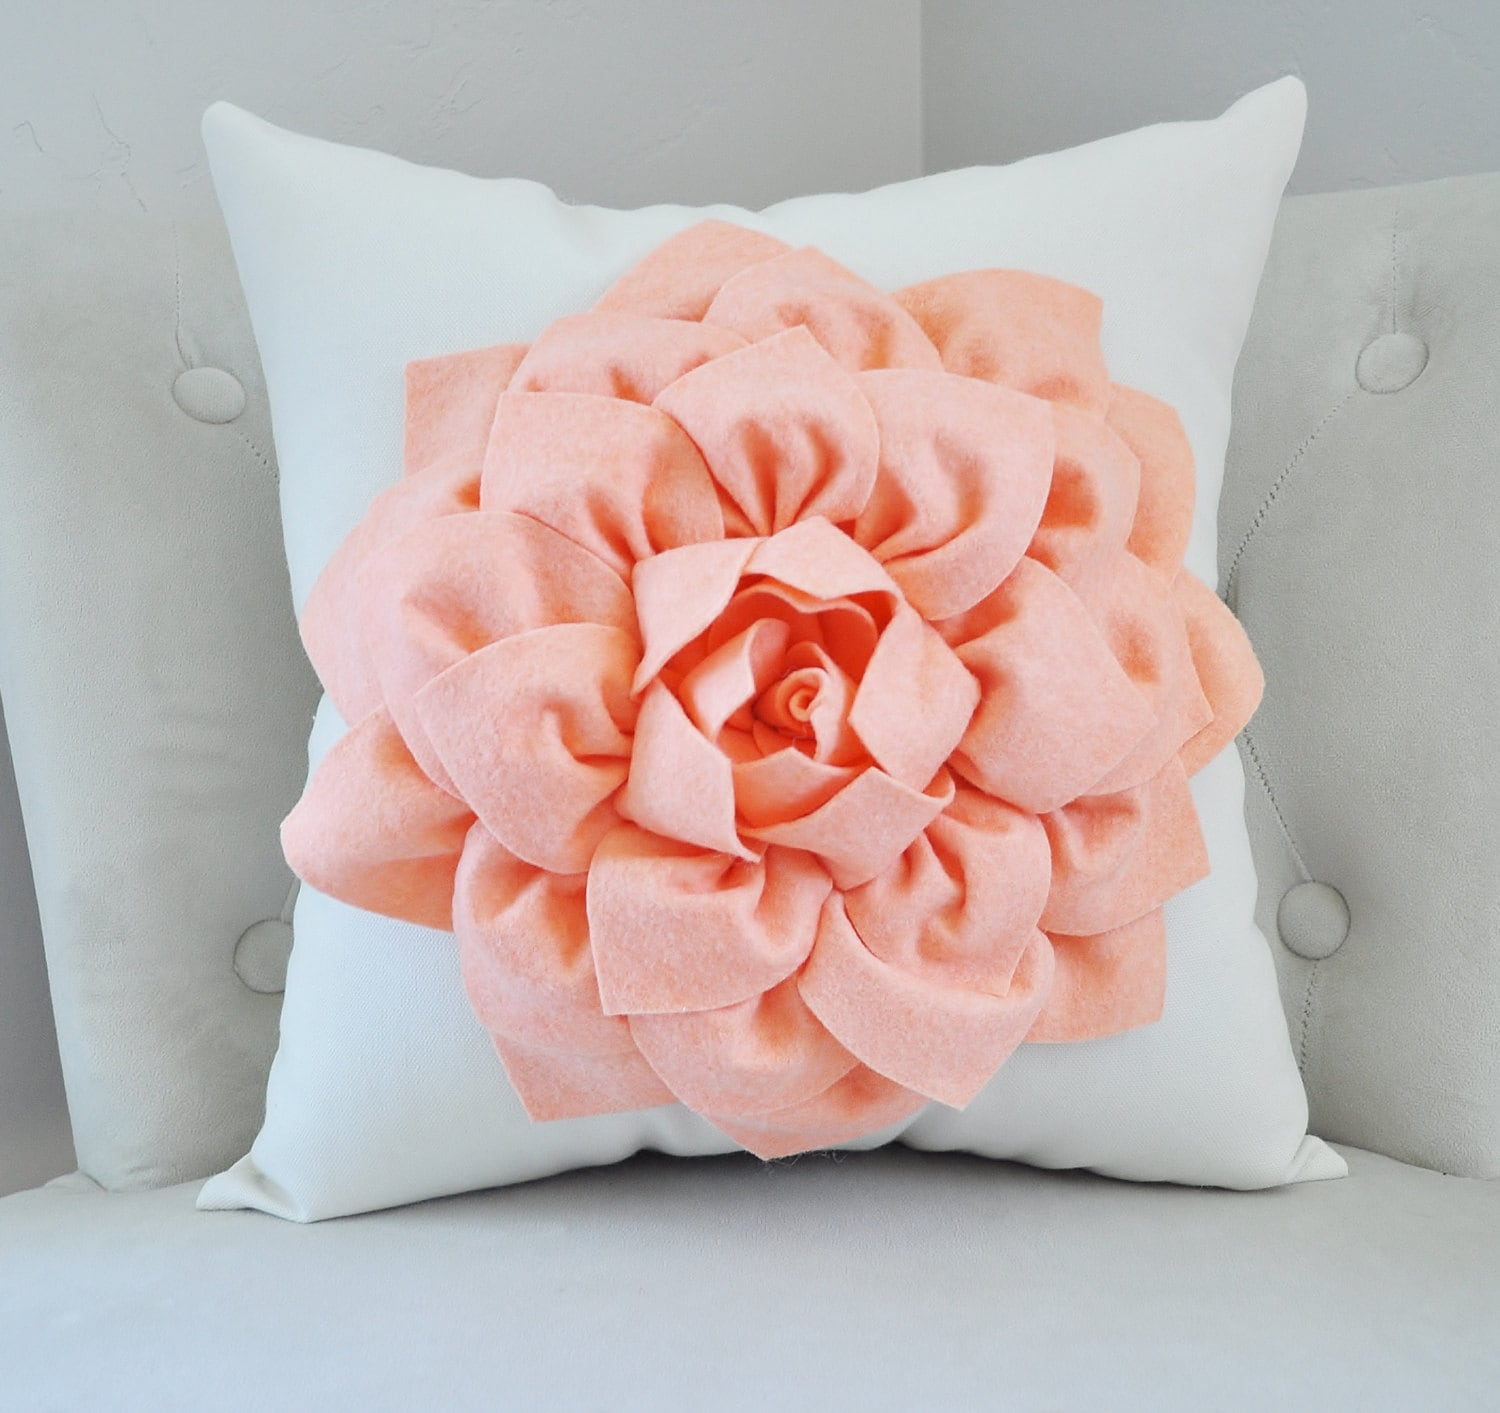 for decorative pillows stylish peach cushion inexpensive decor holiday living pillow sets throw sofas room soopee covers bohemian luxury